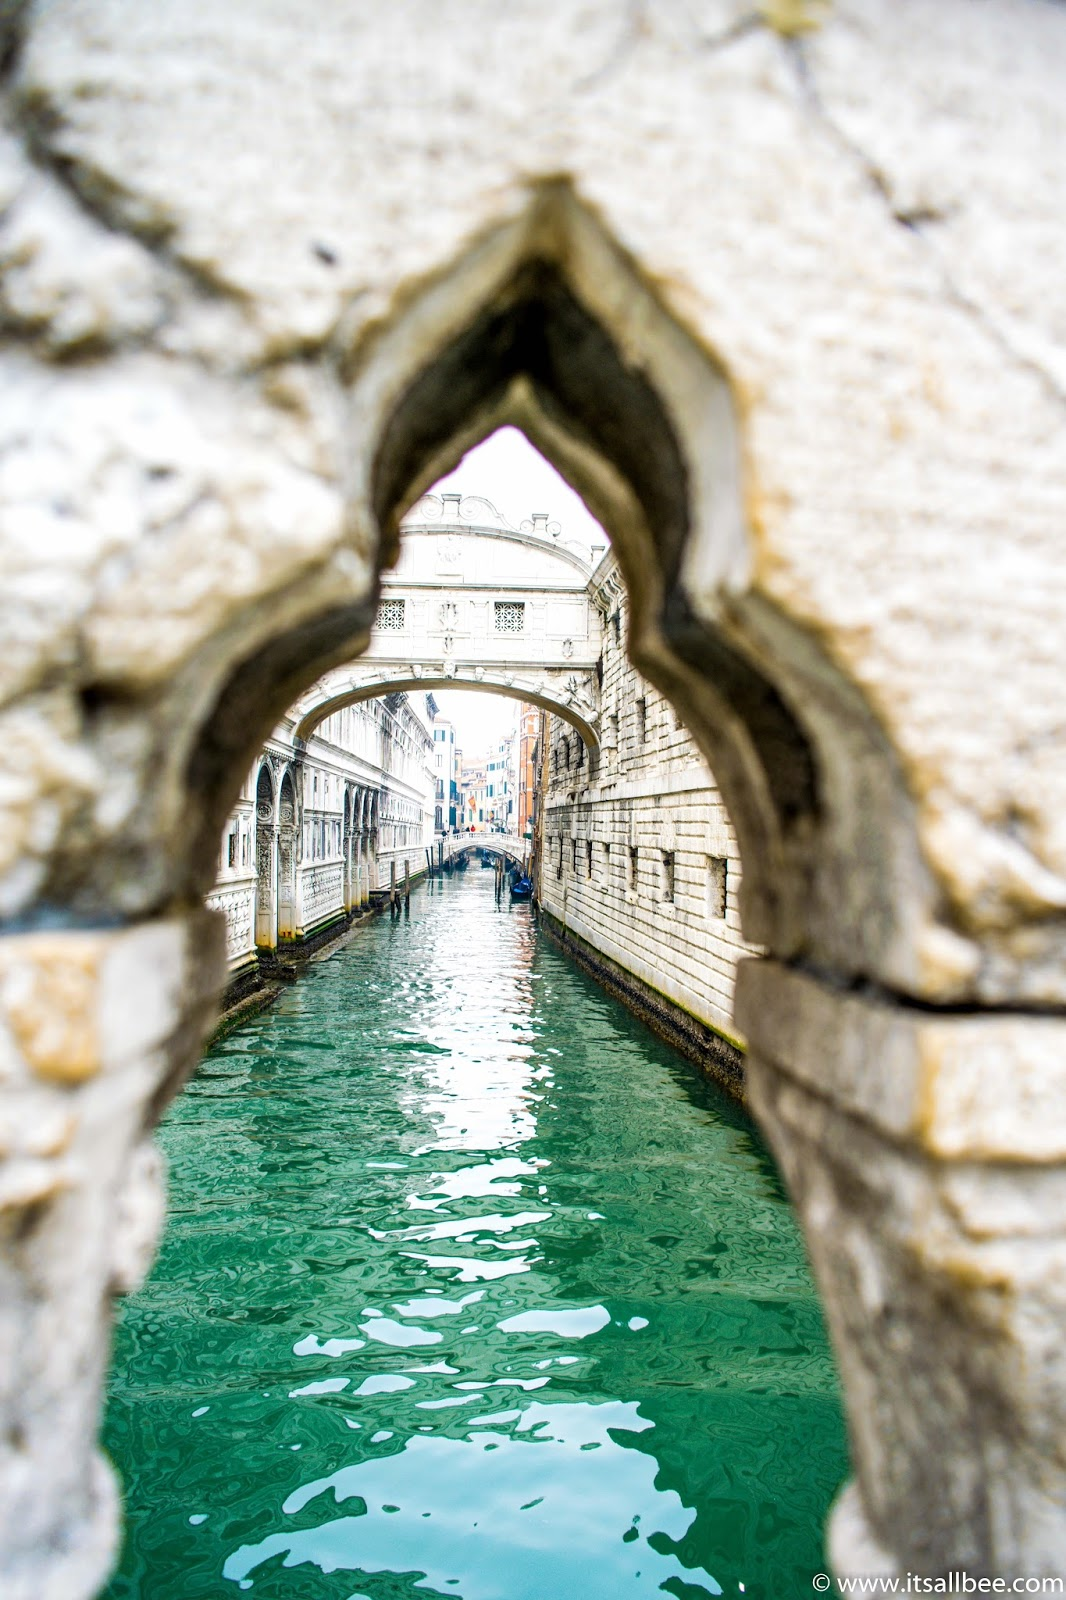 Venice In December | Bridge of sighs